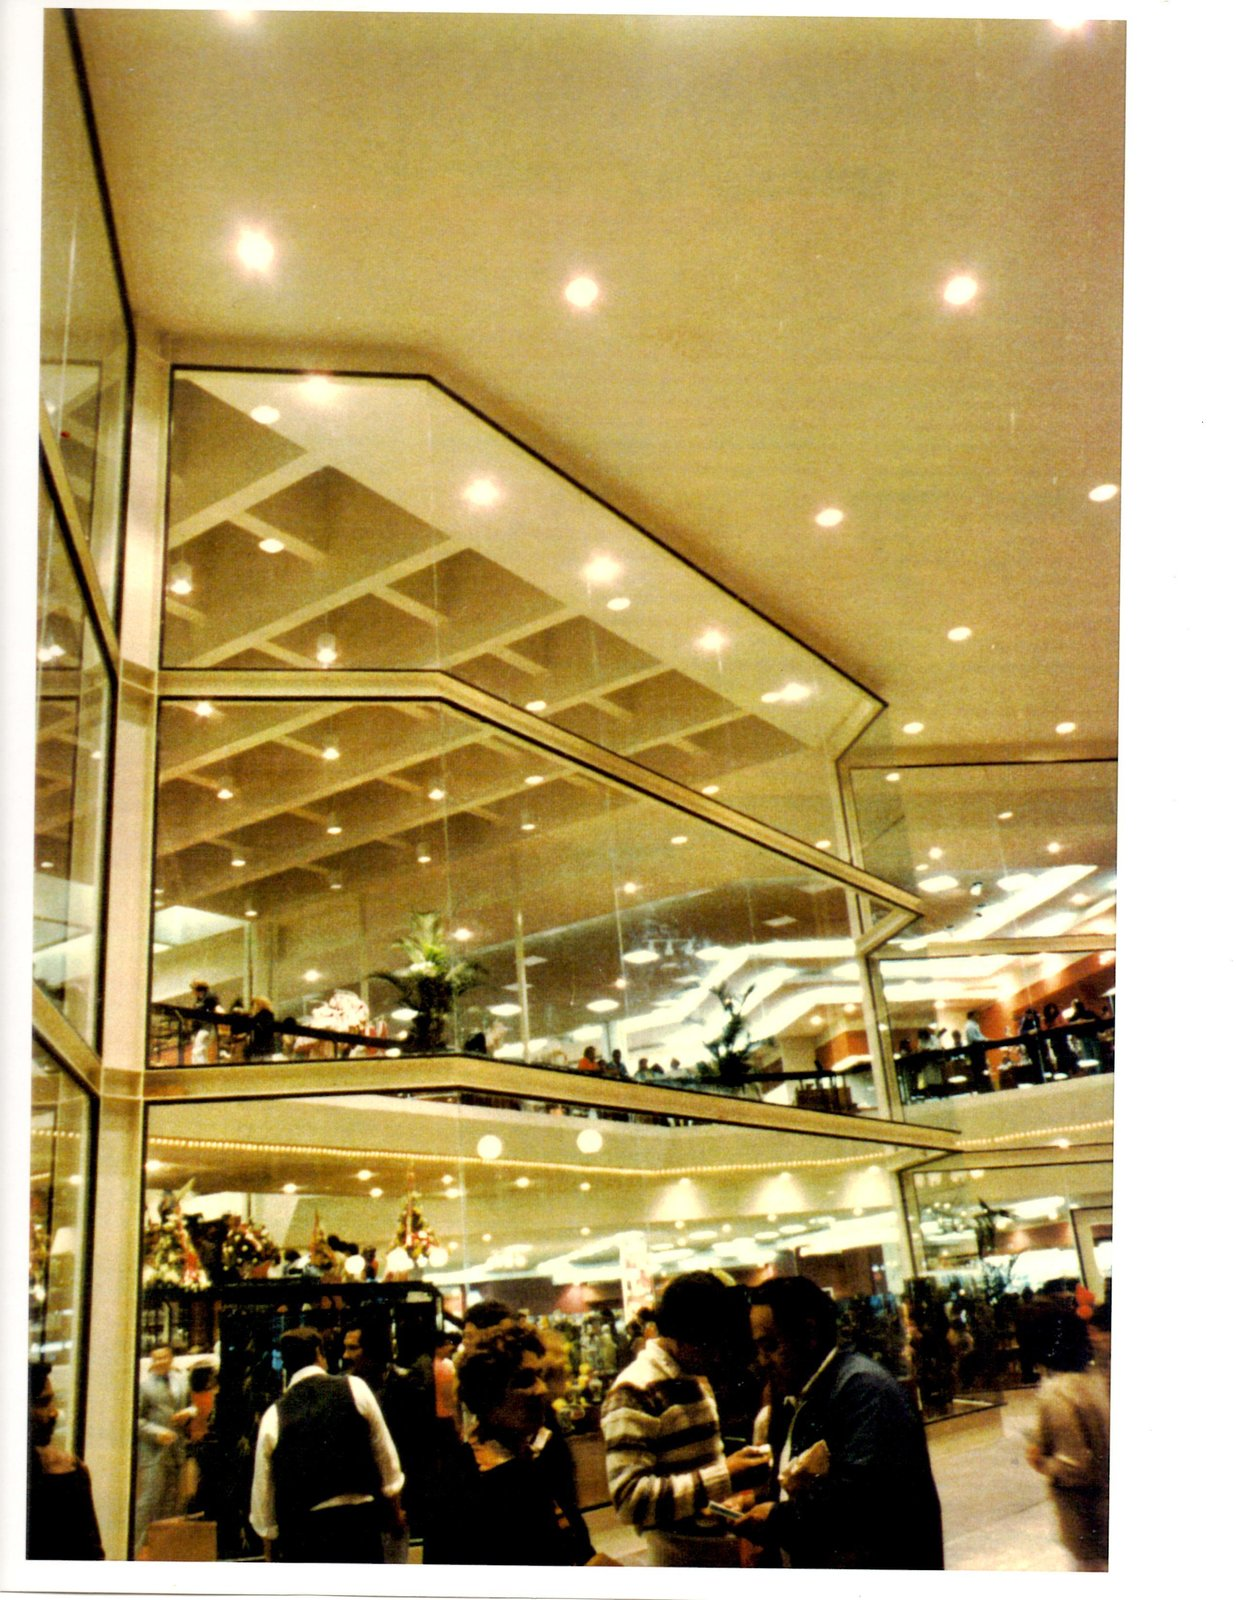 GALLERY PLAZA DEPARTMENT STORE Glass curtain wall served successfully as catalytic between exterior and interior activities at the store.  RETAIL STORES